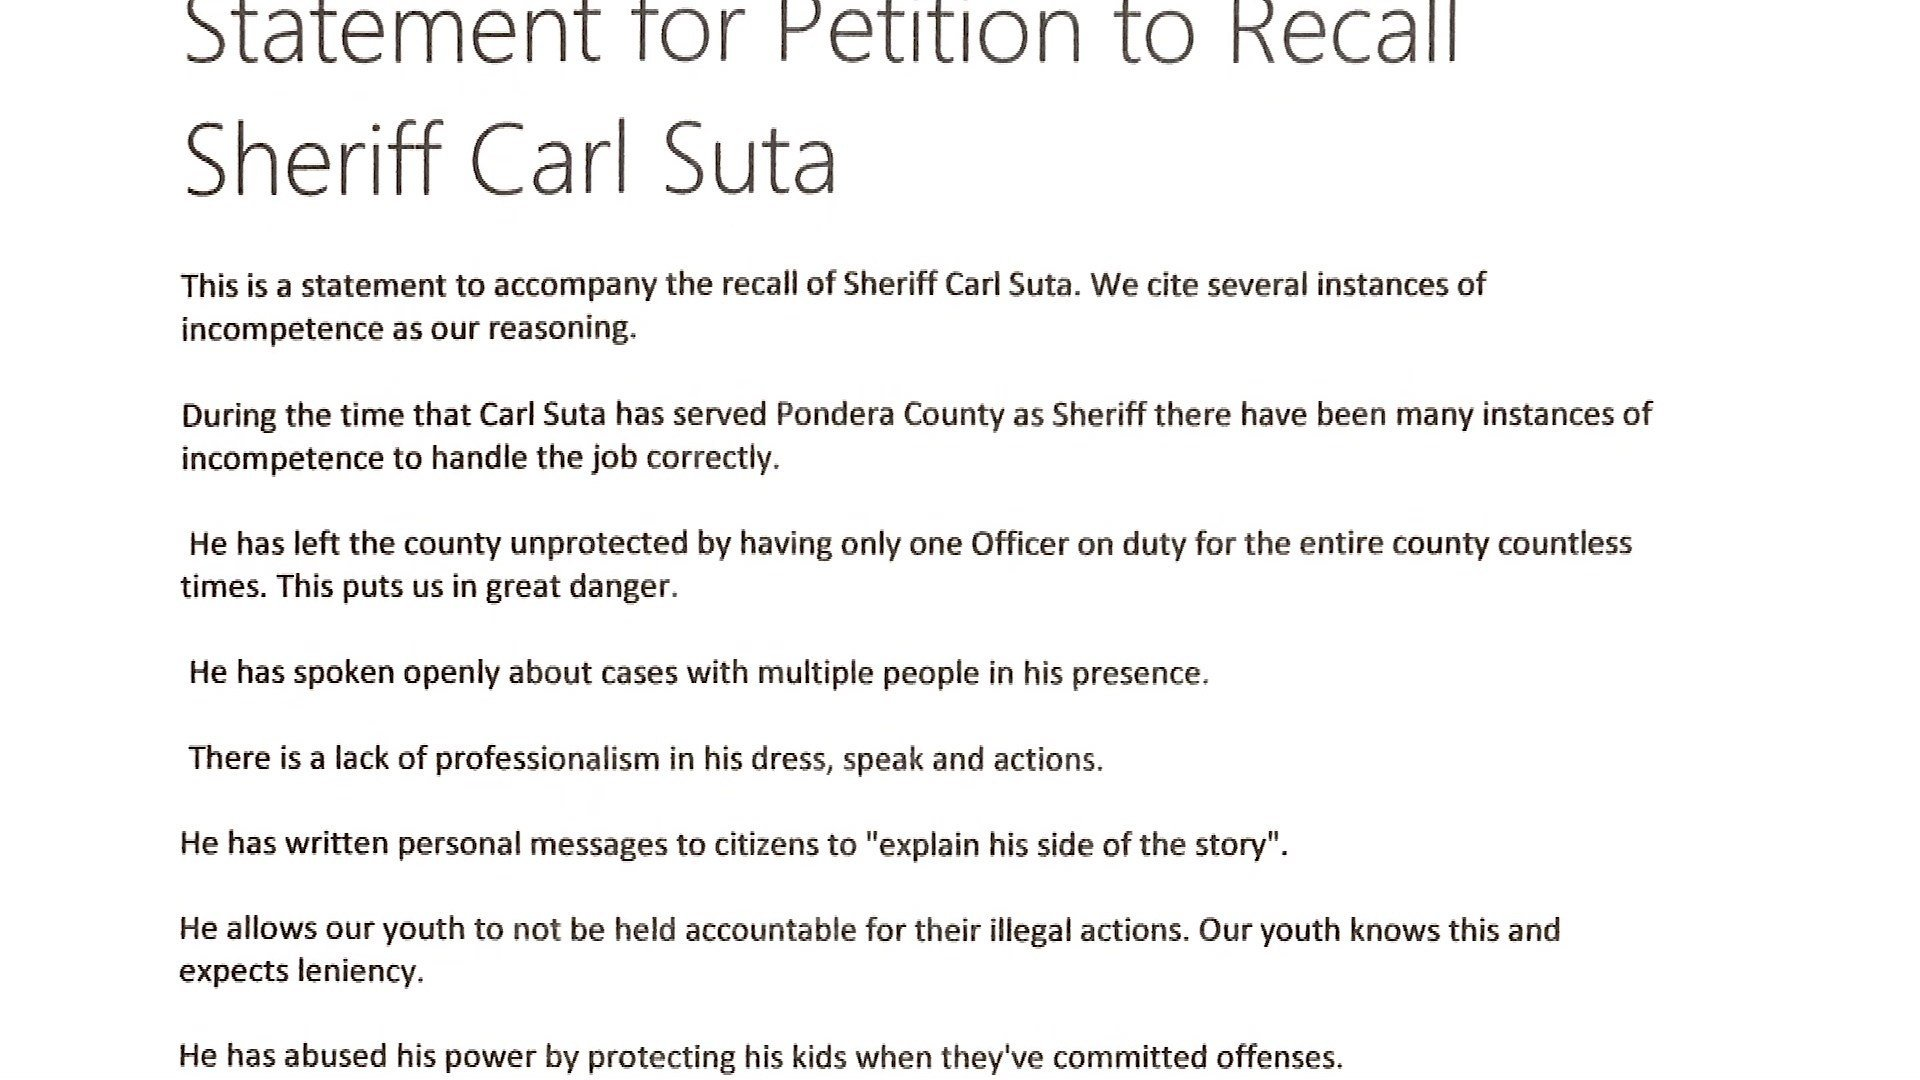 The petition's accompanying statement alleges several instances of Suta being incompetent.